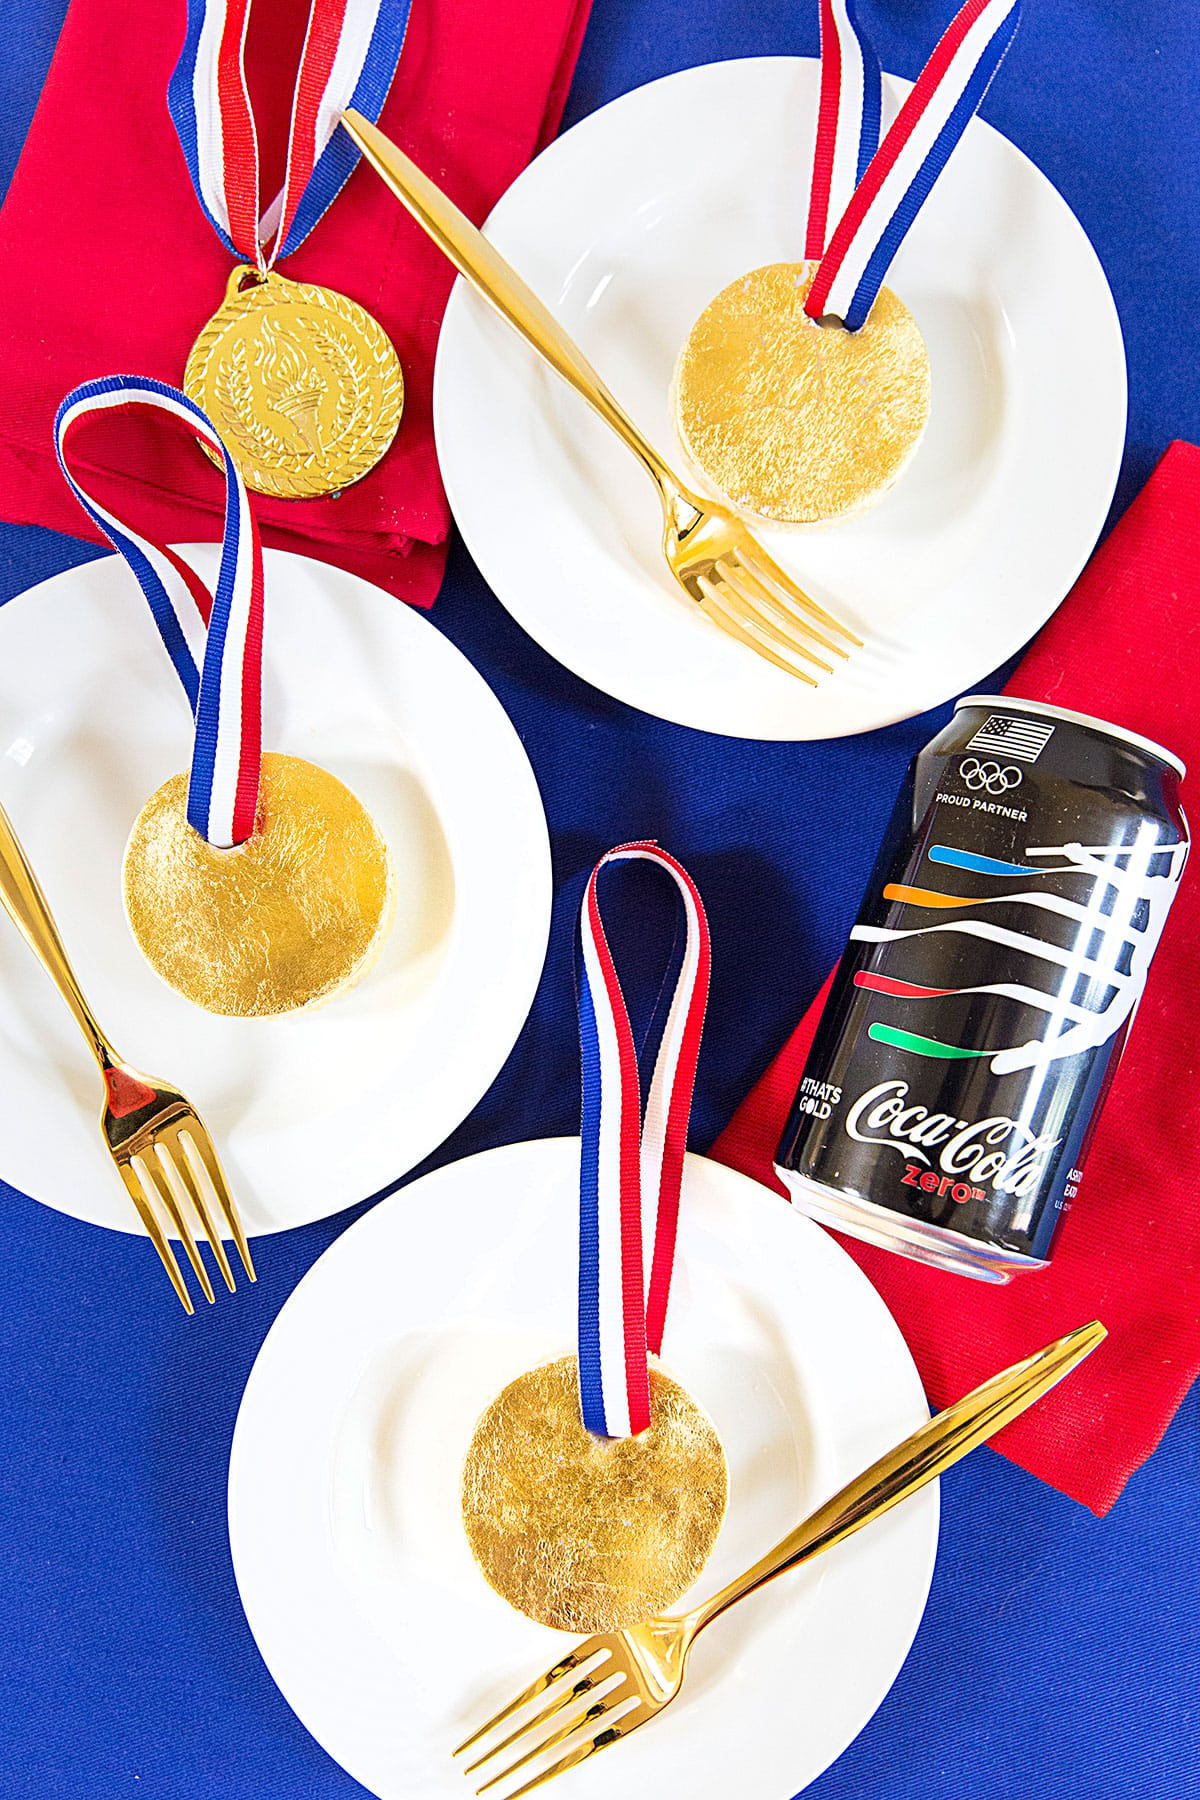 Mini Gold Medal Cakes, Olympics Treat!